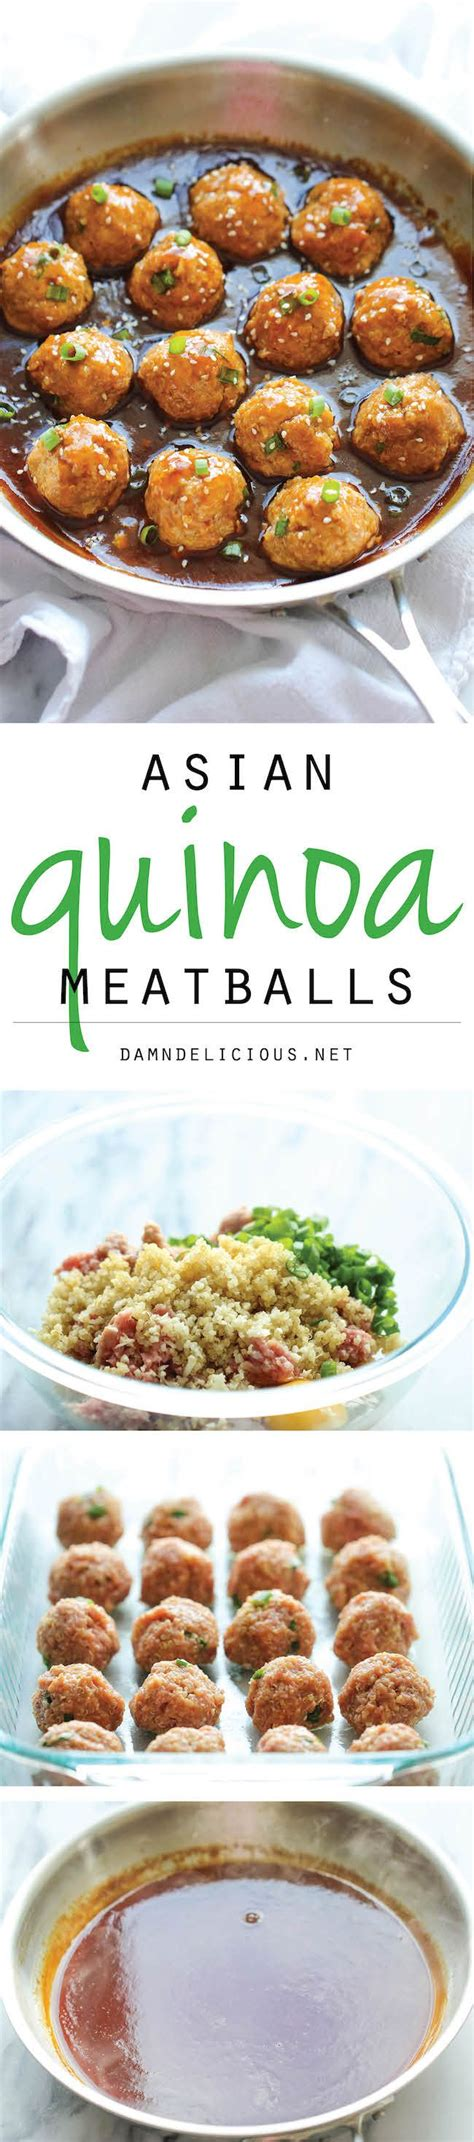 light and healthy dinners asian quinoa meatballs recipe